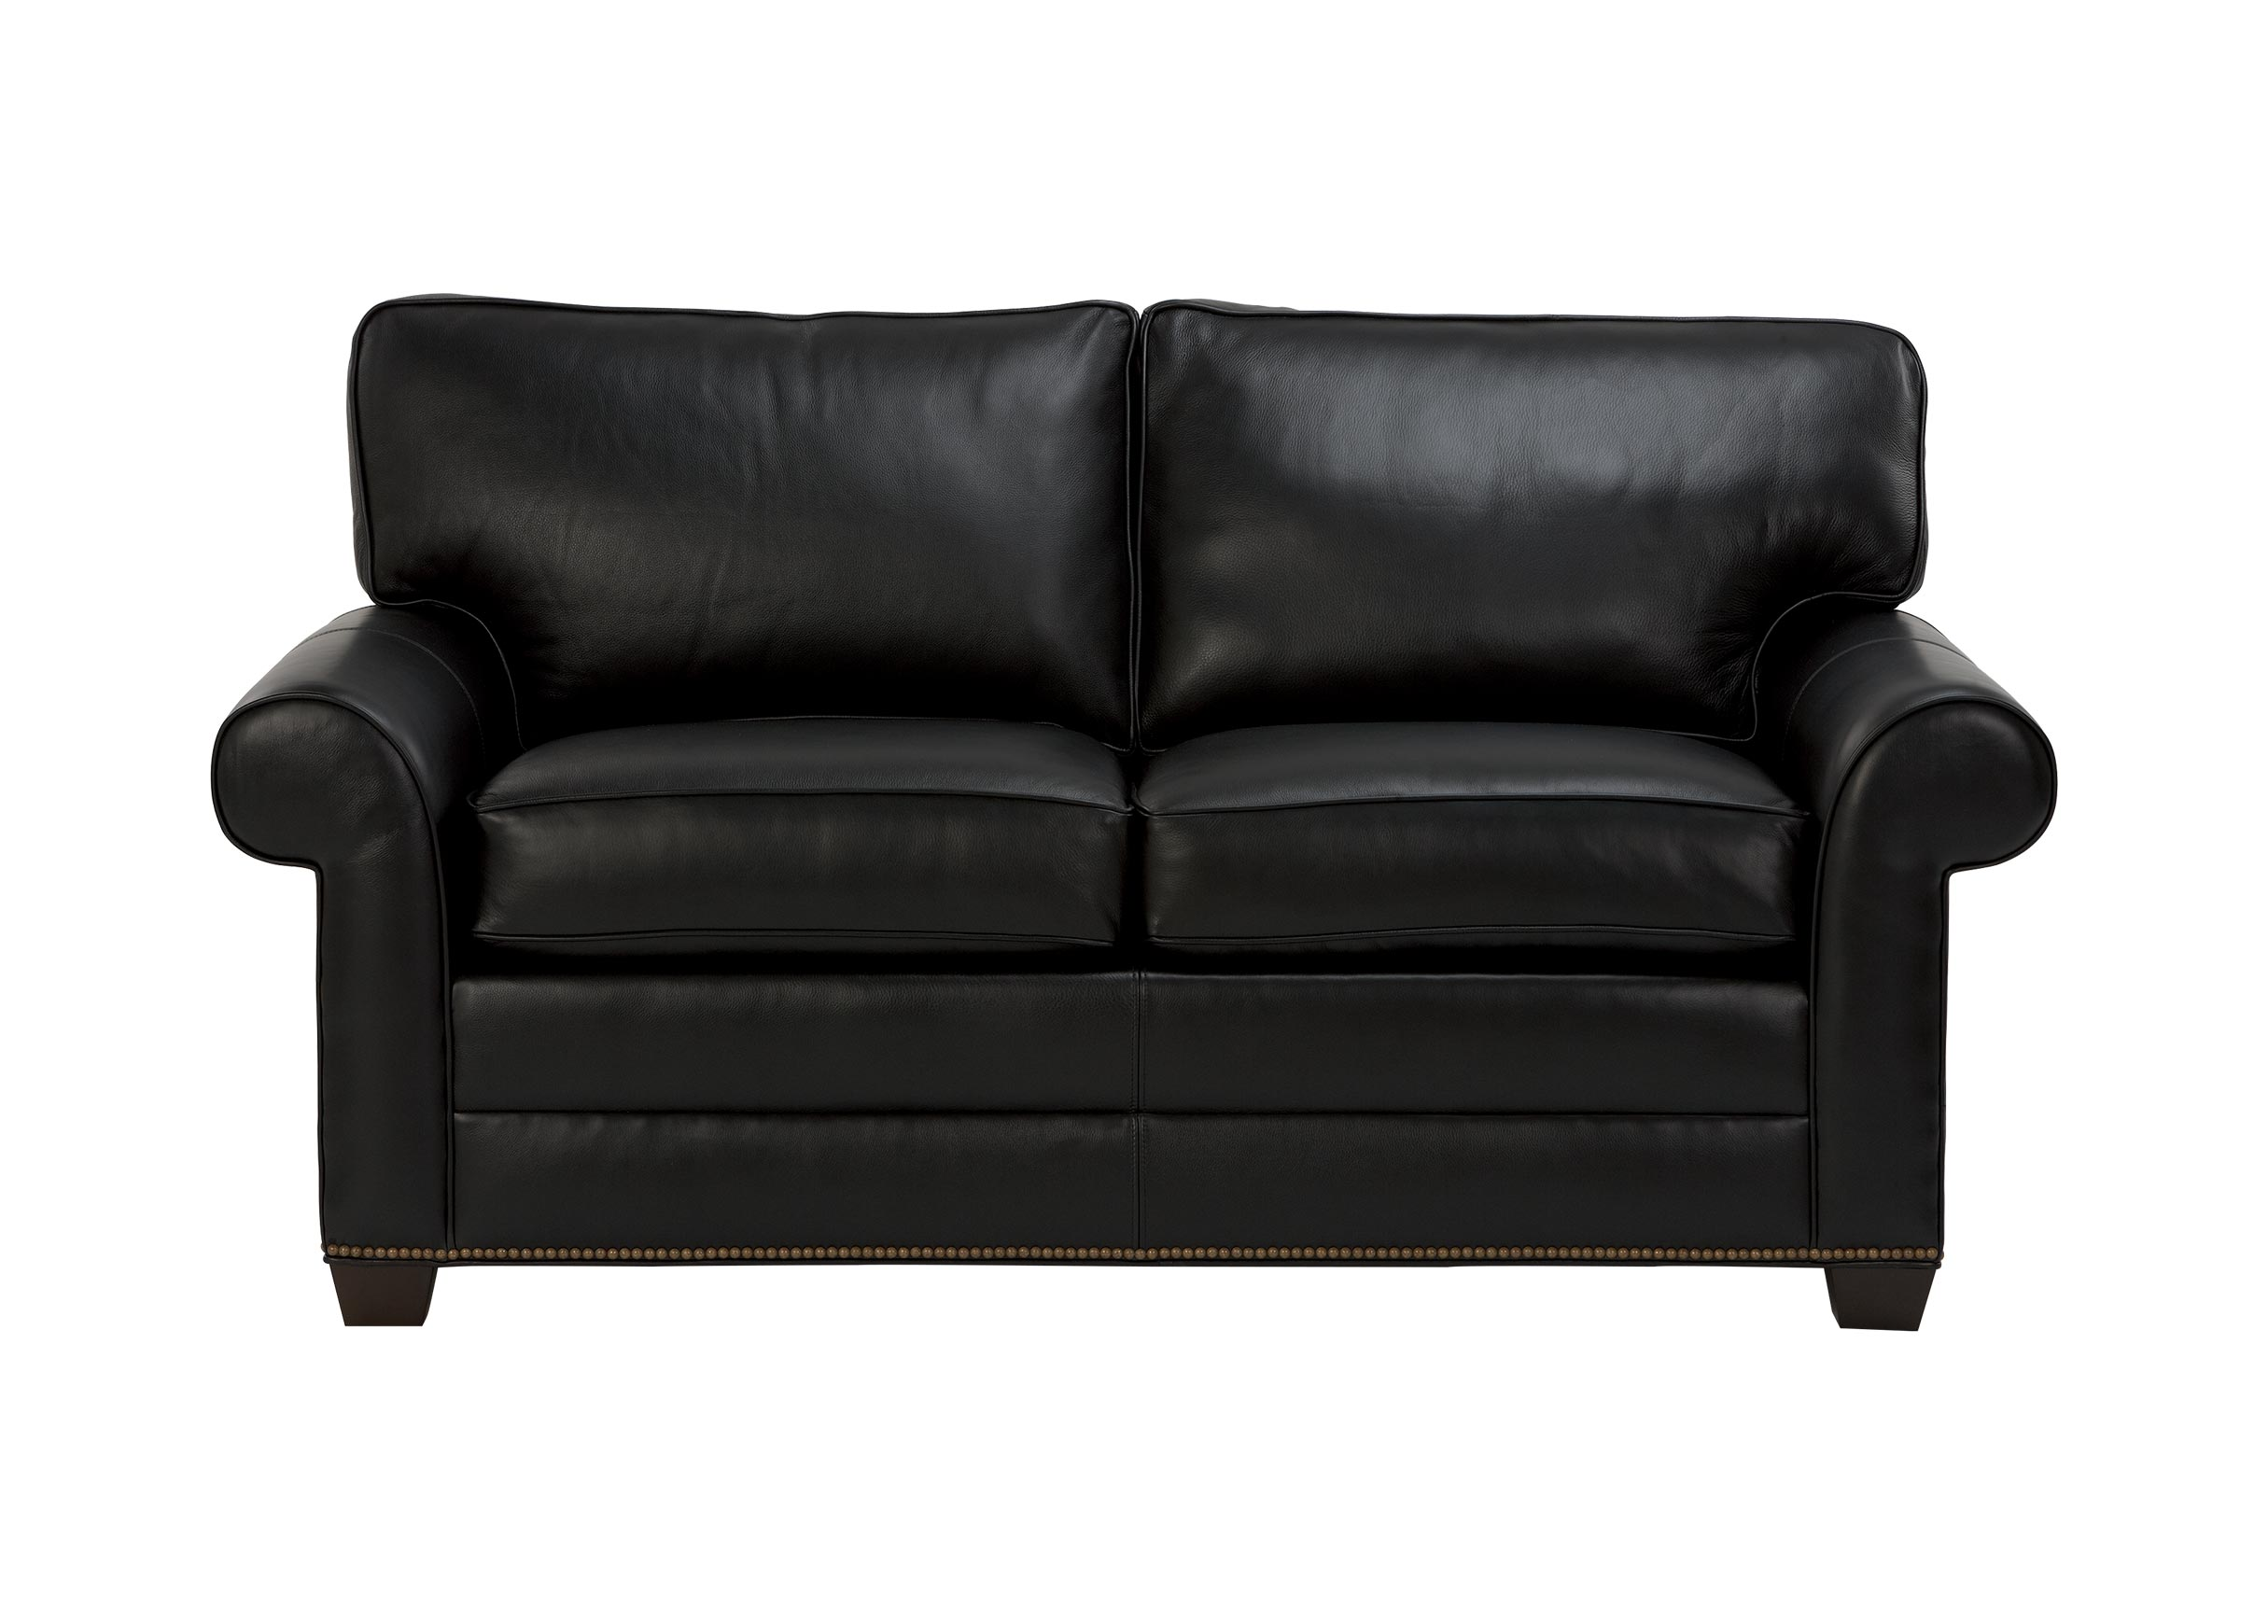 free today and italian garden sofa home product black shipping overstock leather chair emma loveseat